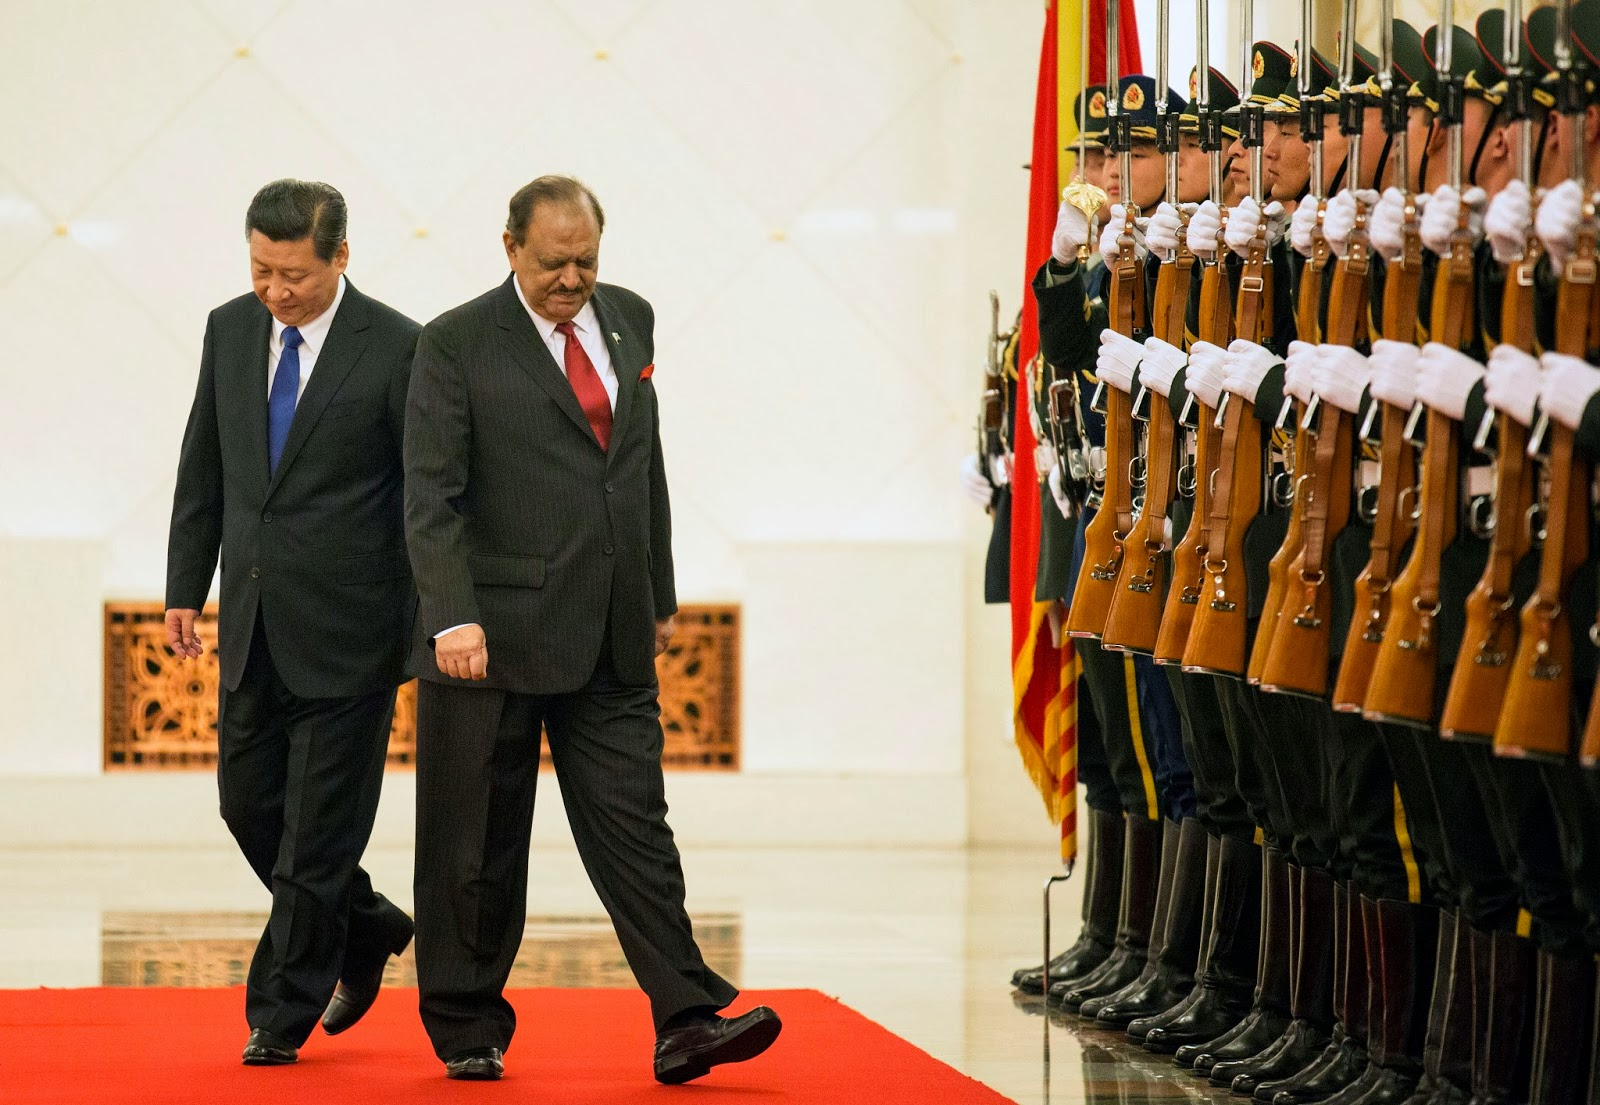 China, China Visit, Economy, Great Wall, Mamnoon Hussain, New, Paksitan, Politician, Politicians, Politics, President, Trade, Xi Jinping,